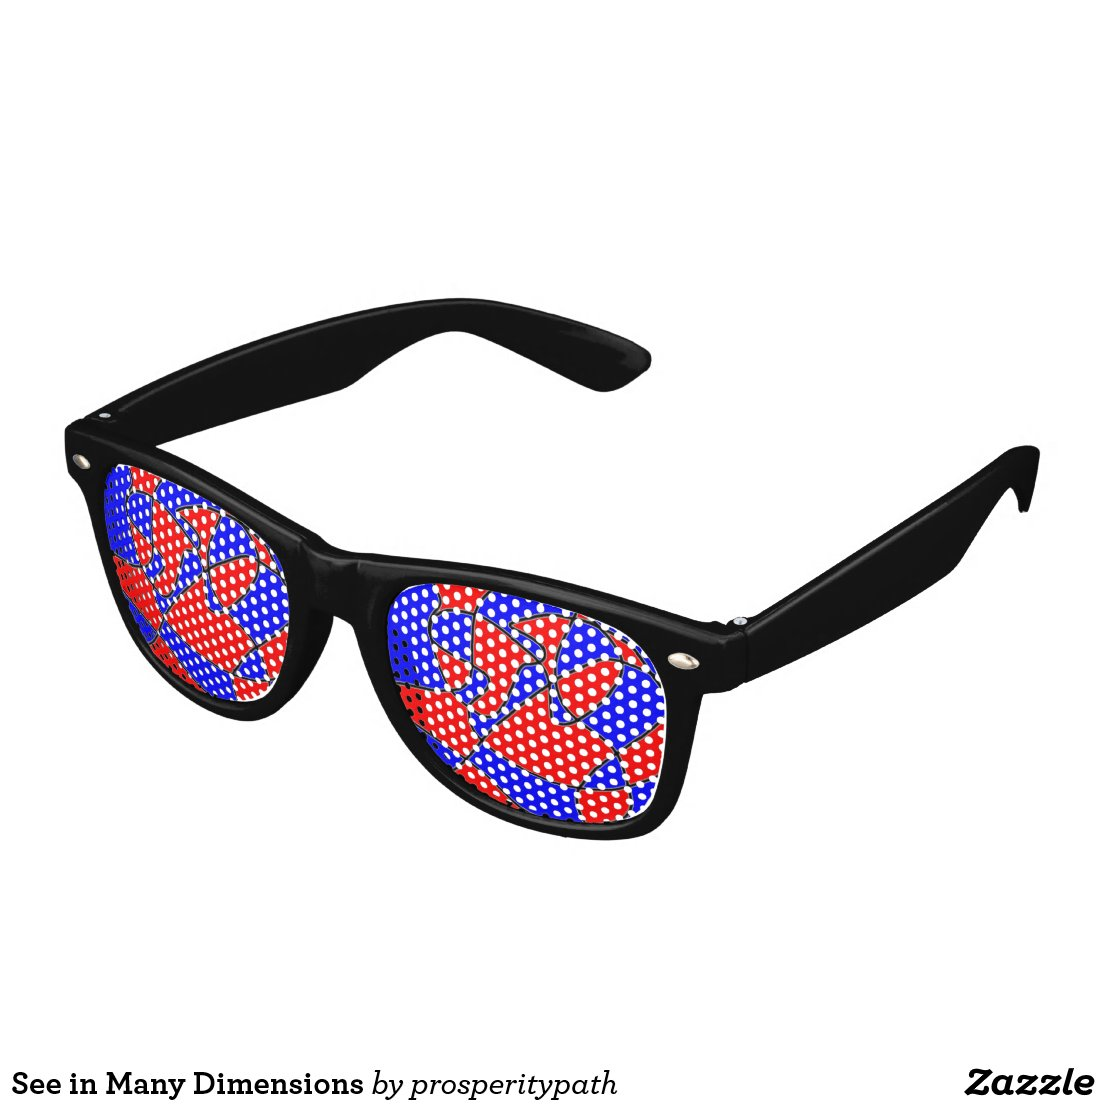 See in Many Dimensions Retro Sunglasses